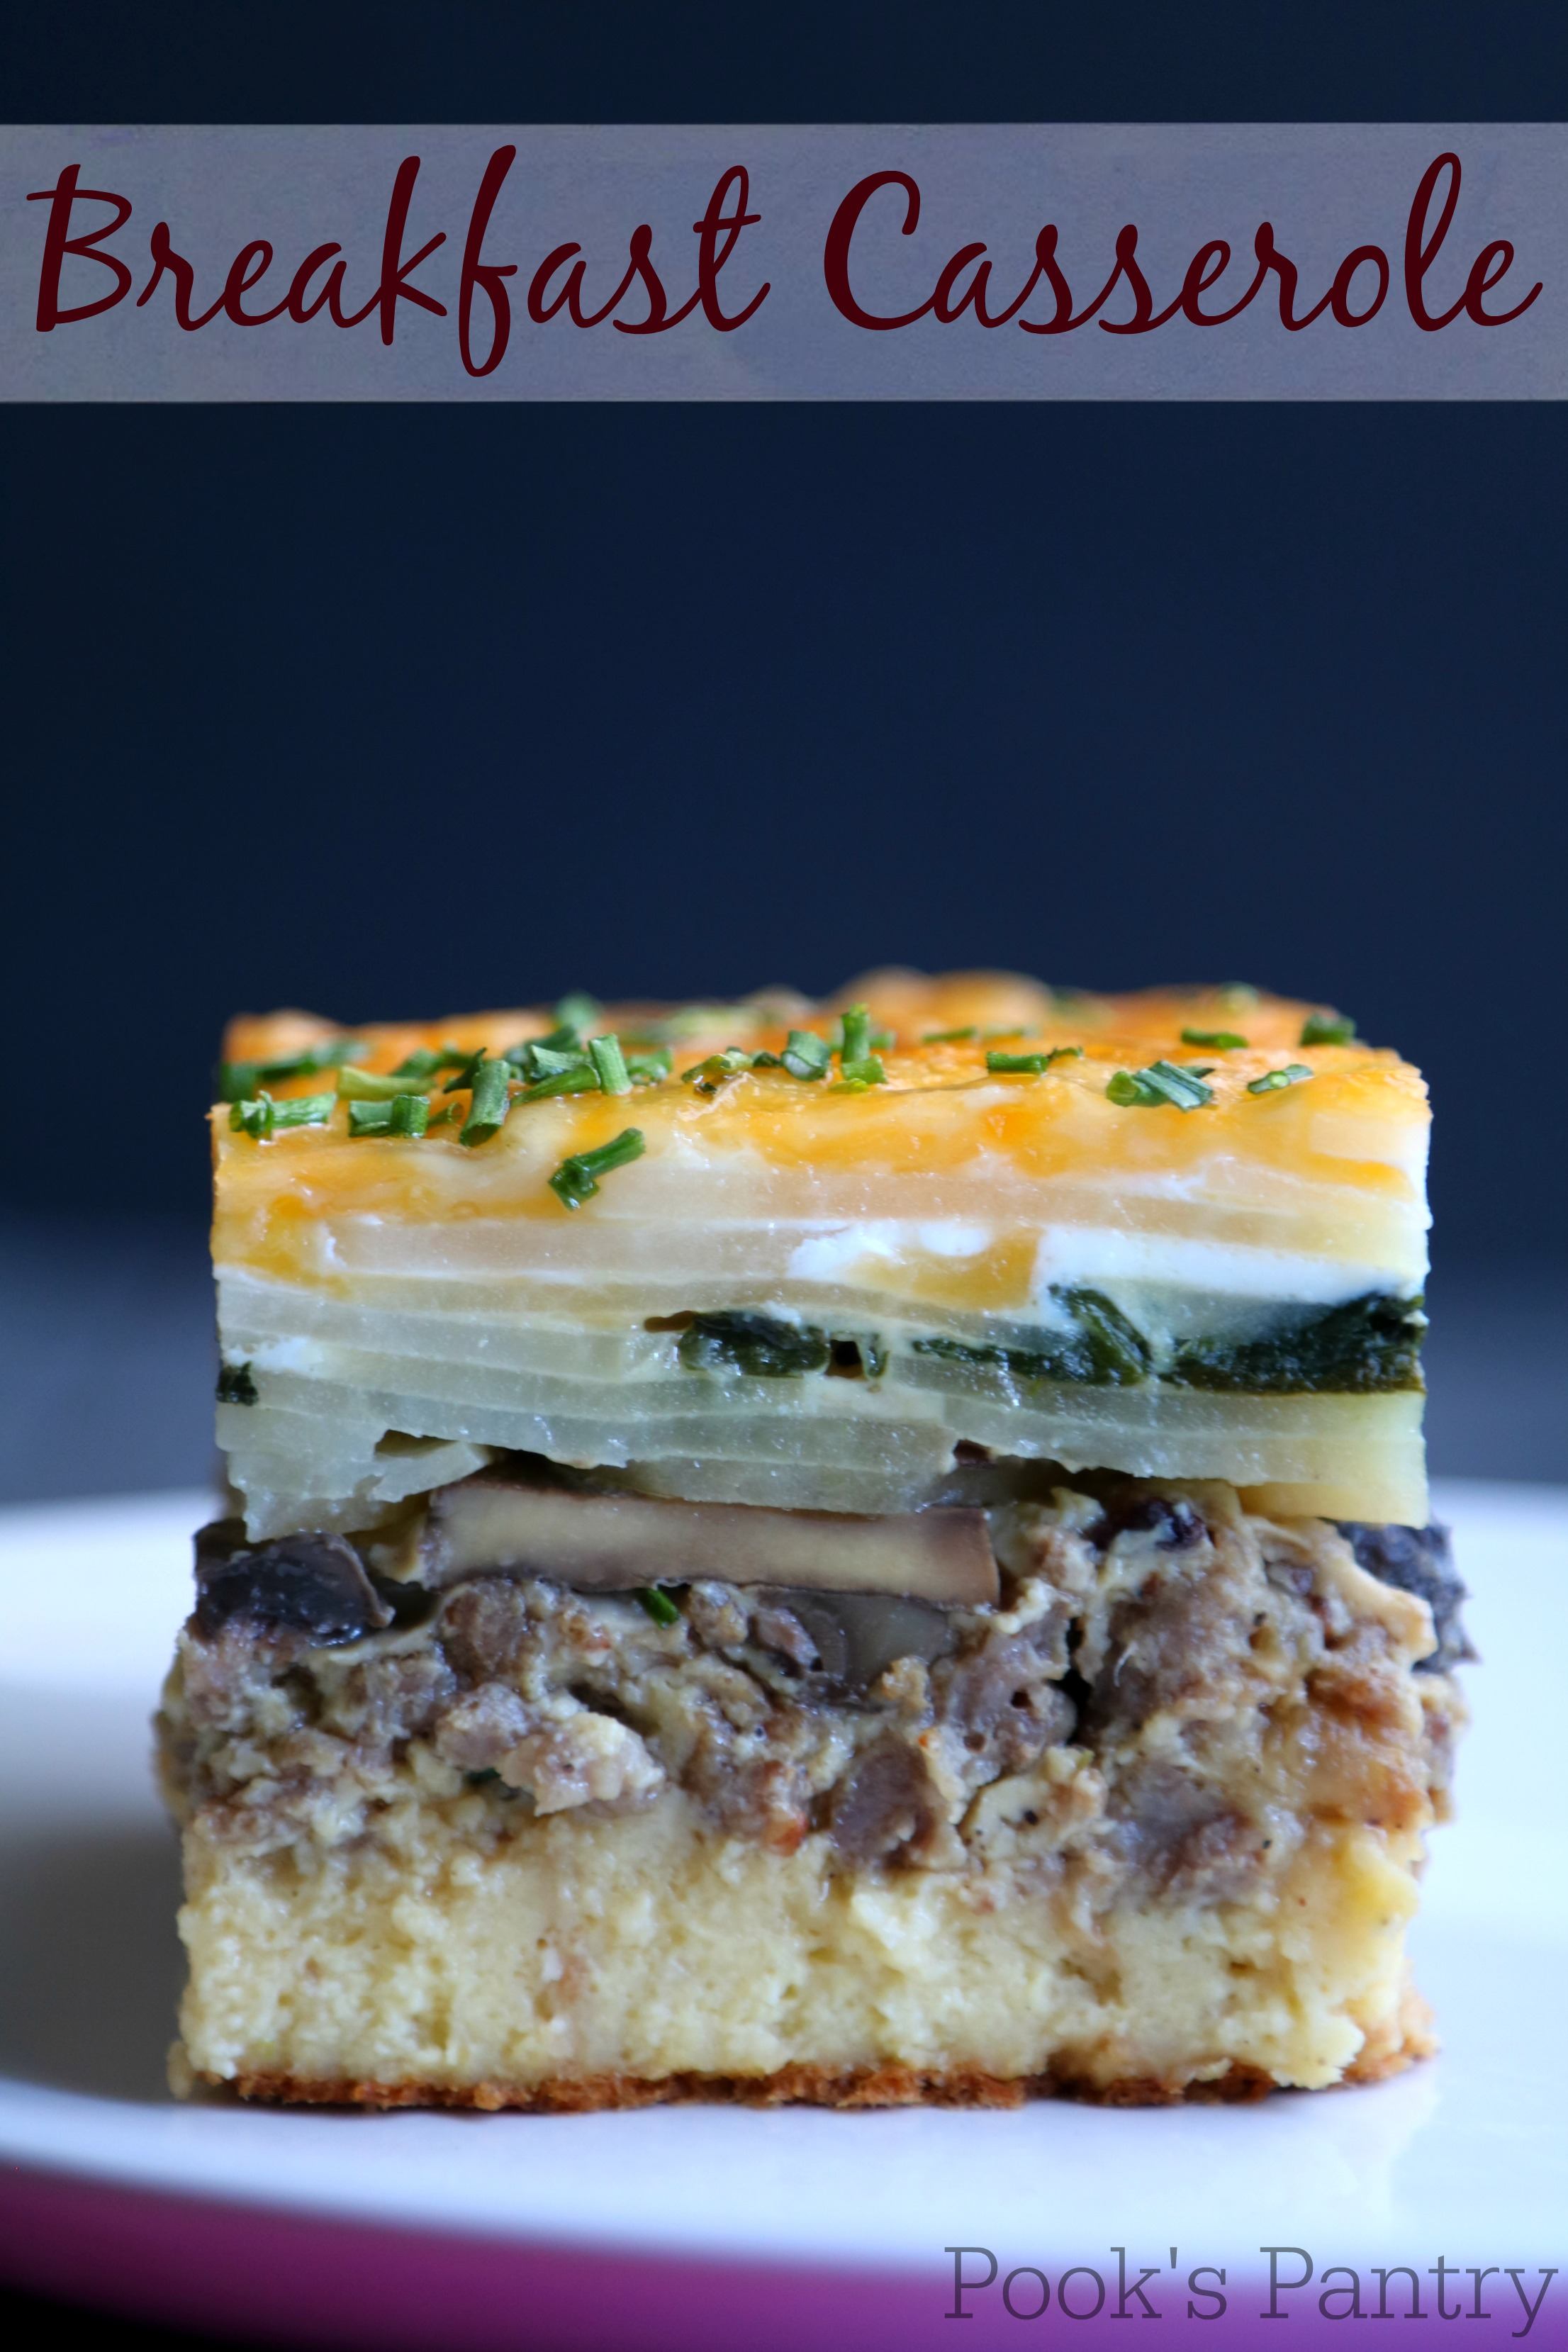 Breakfast Casserole - Pook's Pantry